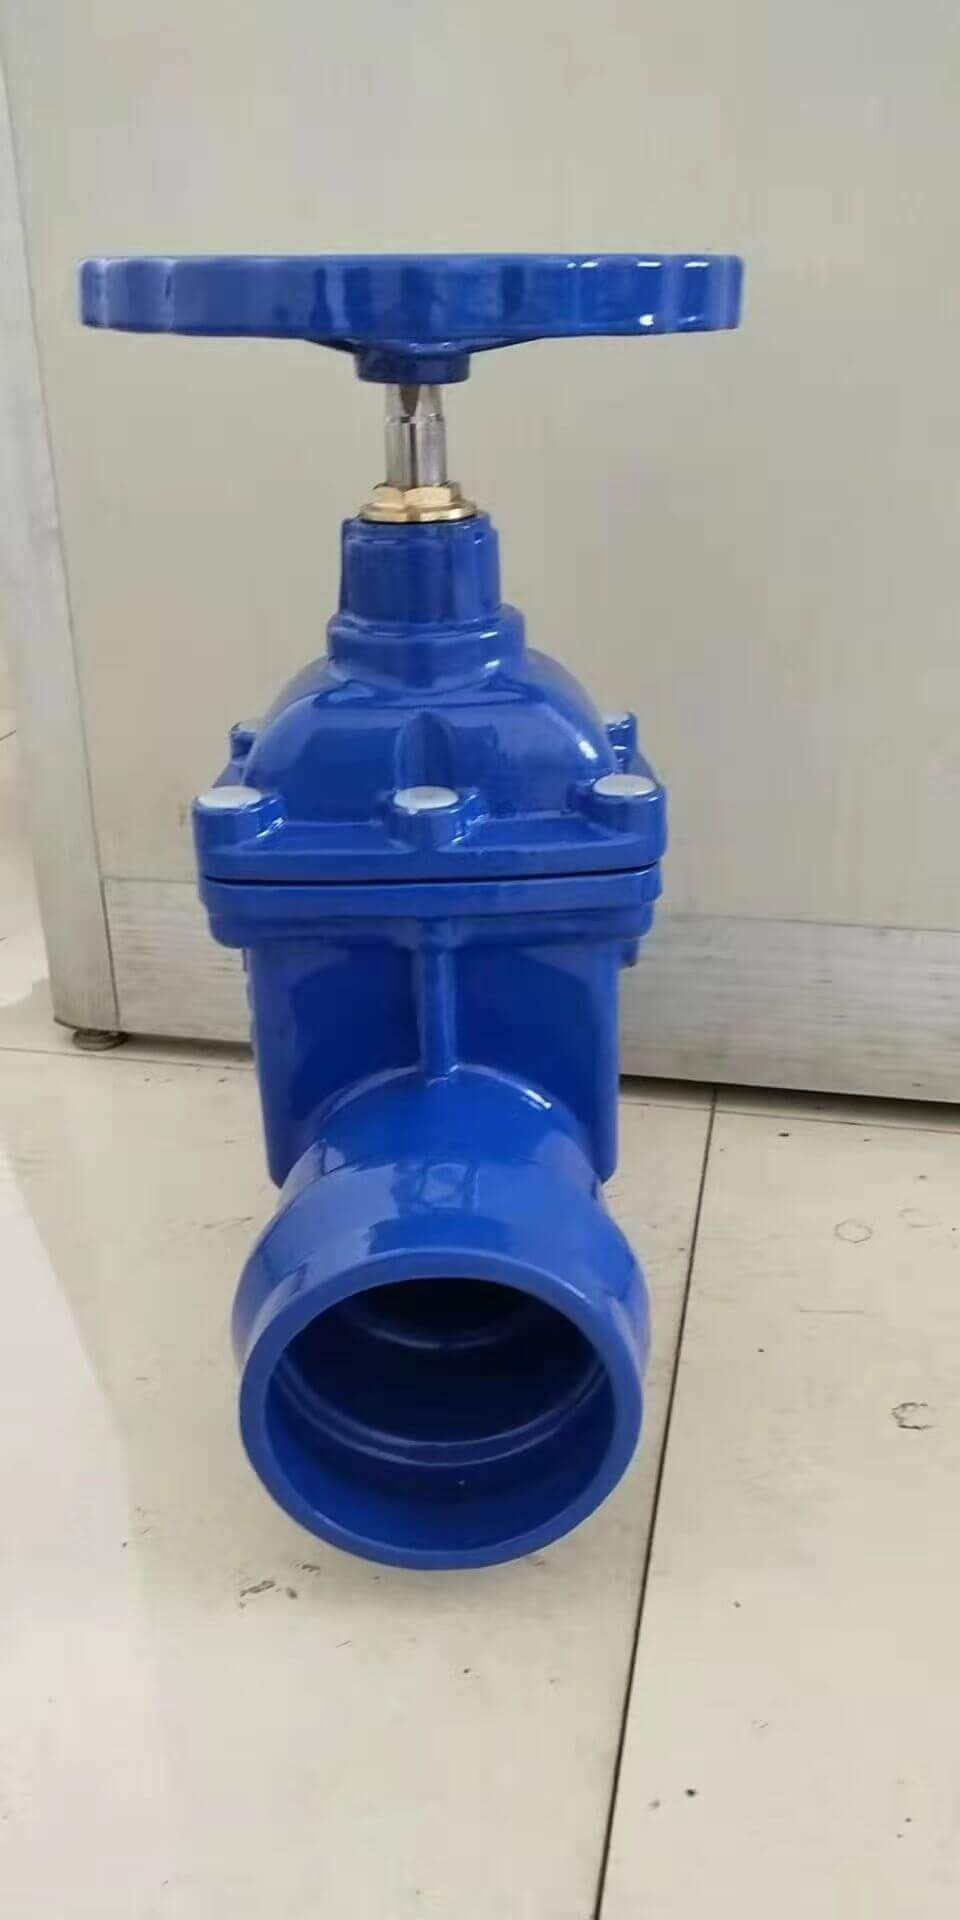 Socket ended resilient seated wedge gate valve-ductile iron (2)